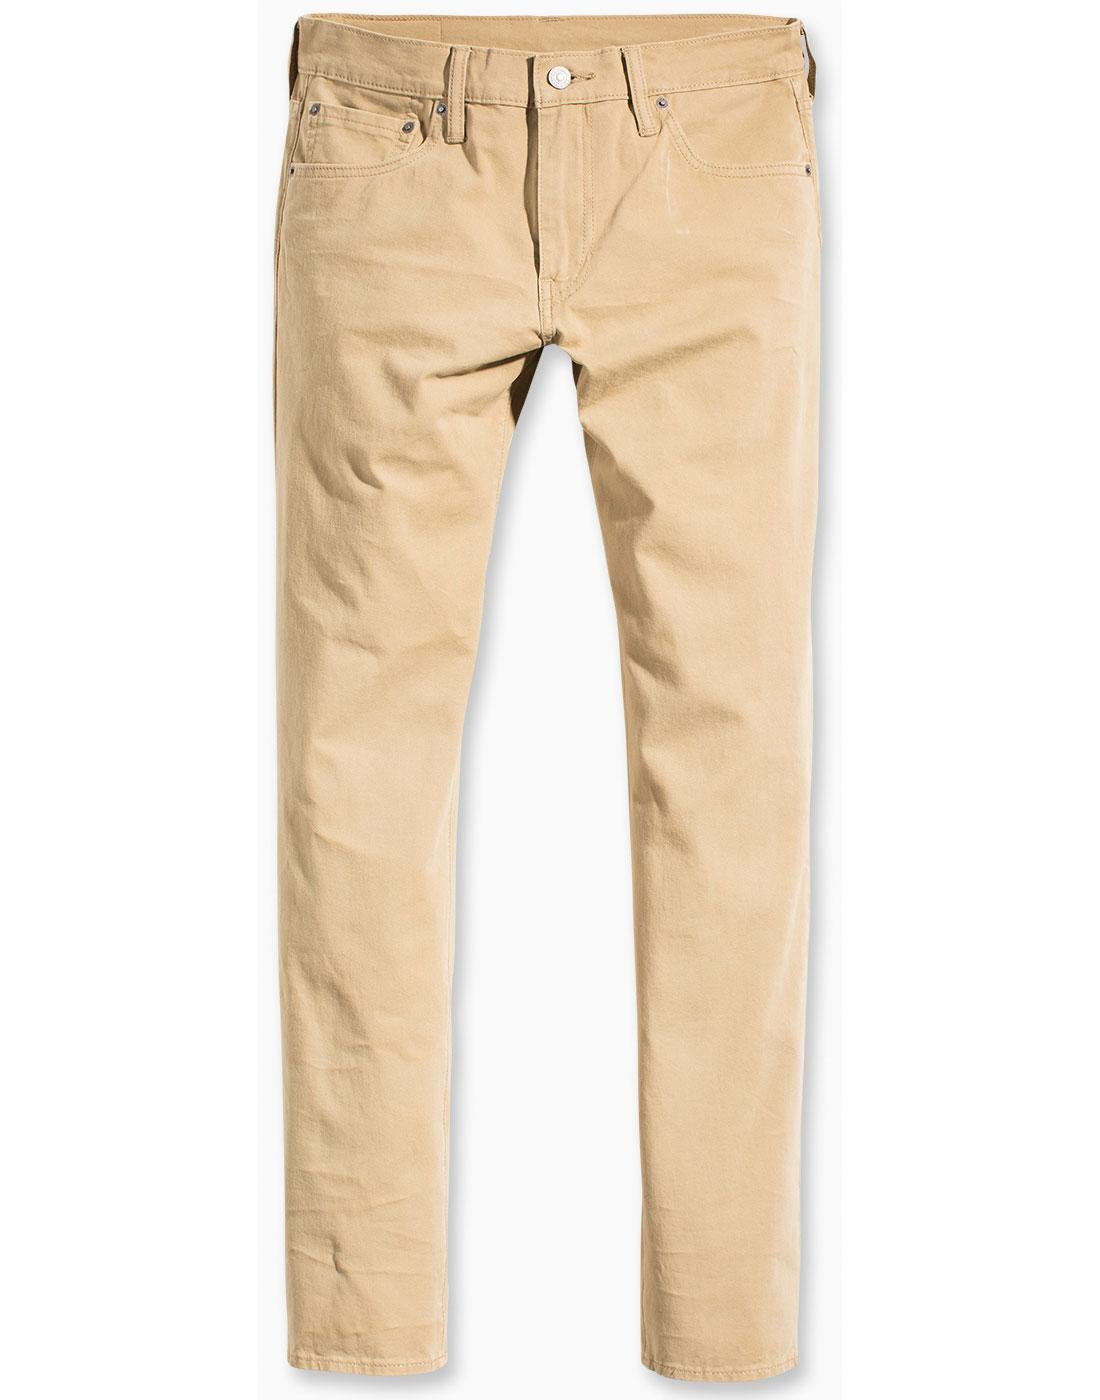 LEVI'S 511 Retro Mod Slim Fit Chinos HARVEST GOLD